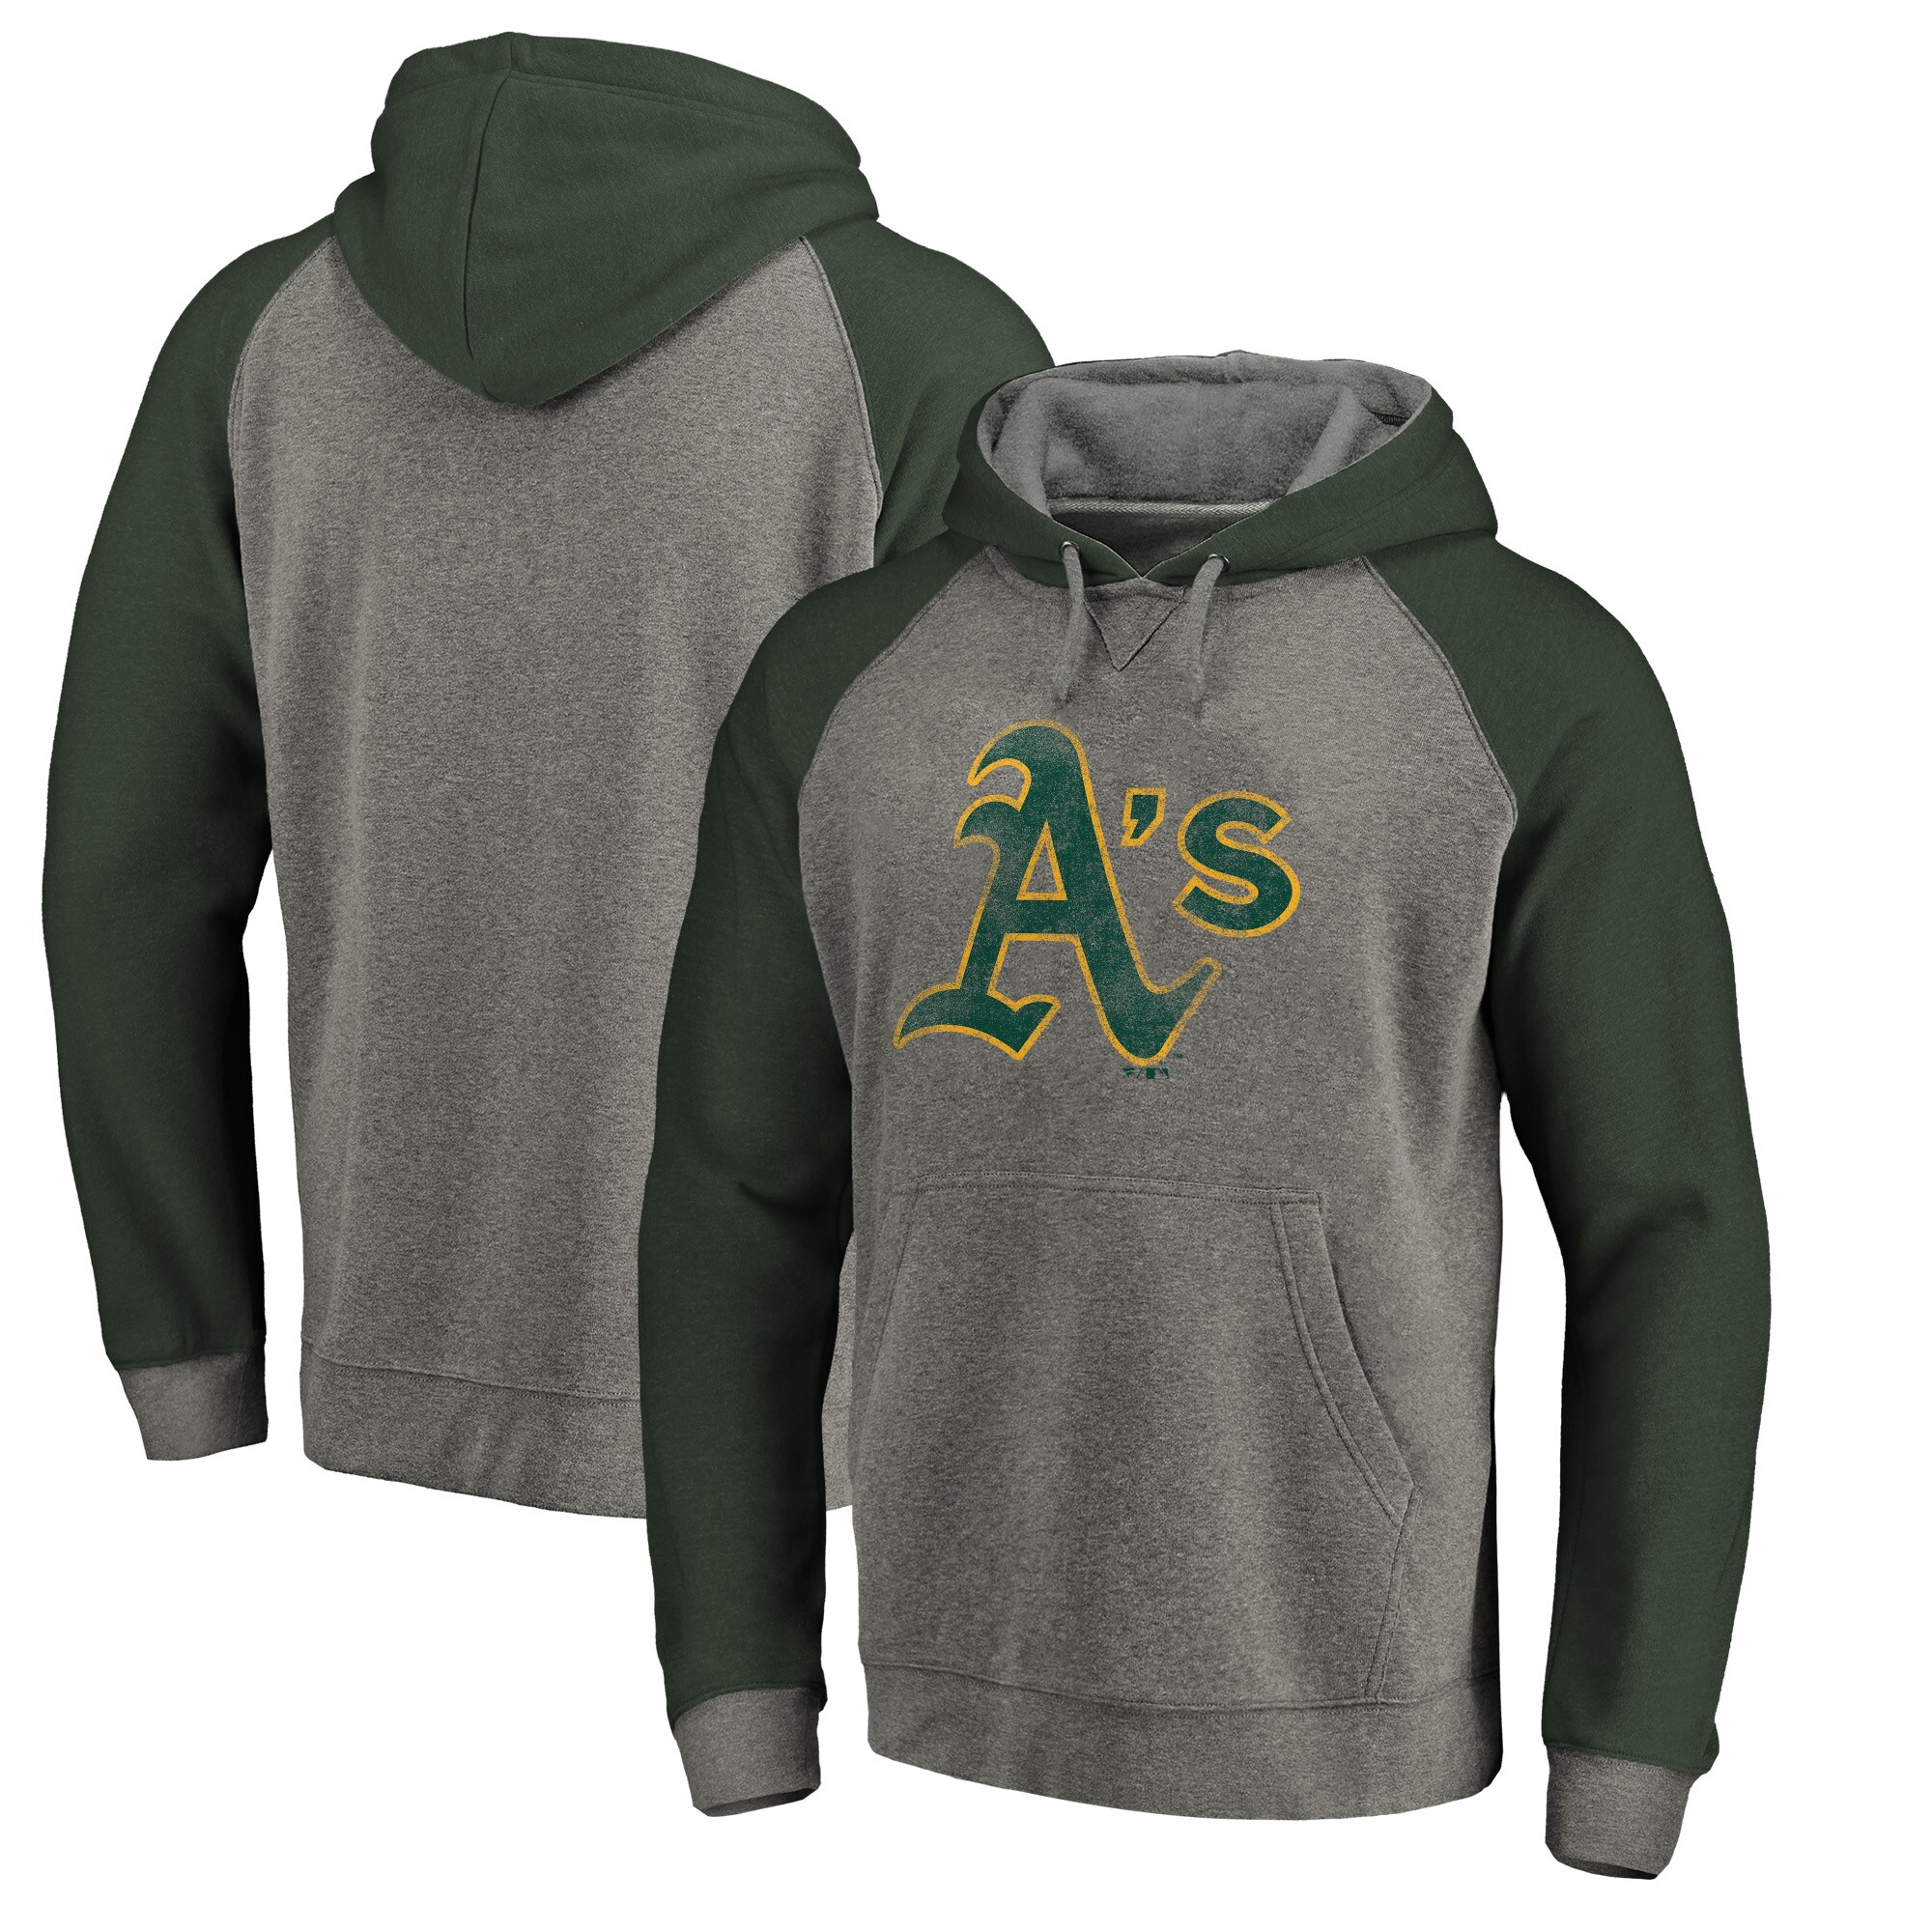 Oakland Athletics Fanatics Branded Distressed Team Logo Tri-Blend Raglan Pullover Hoodie - Gray/Green